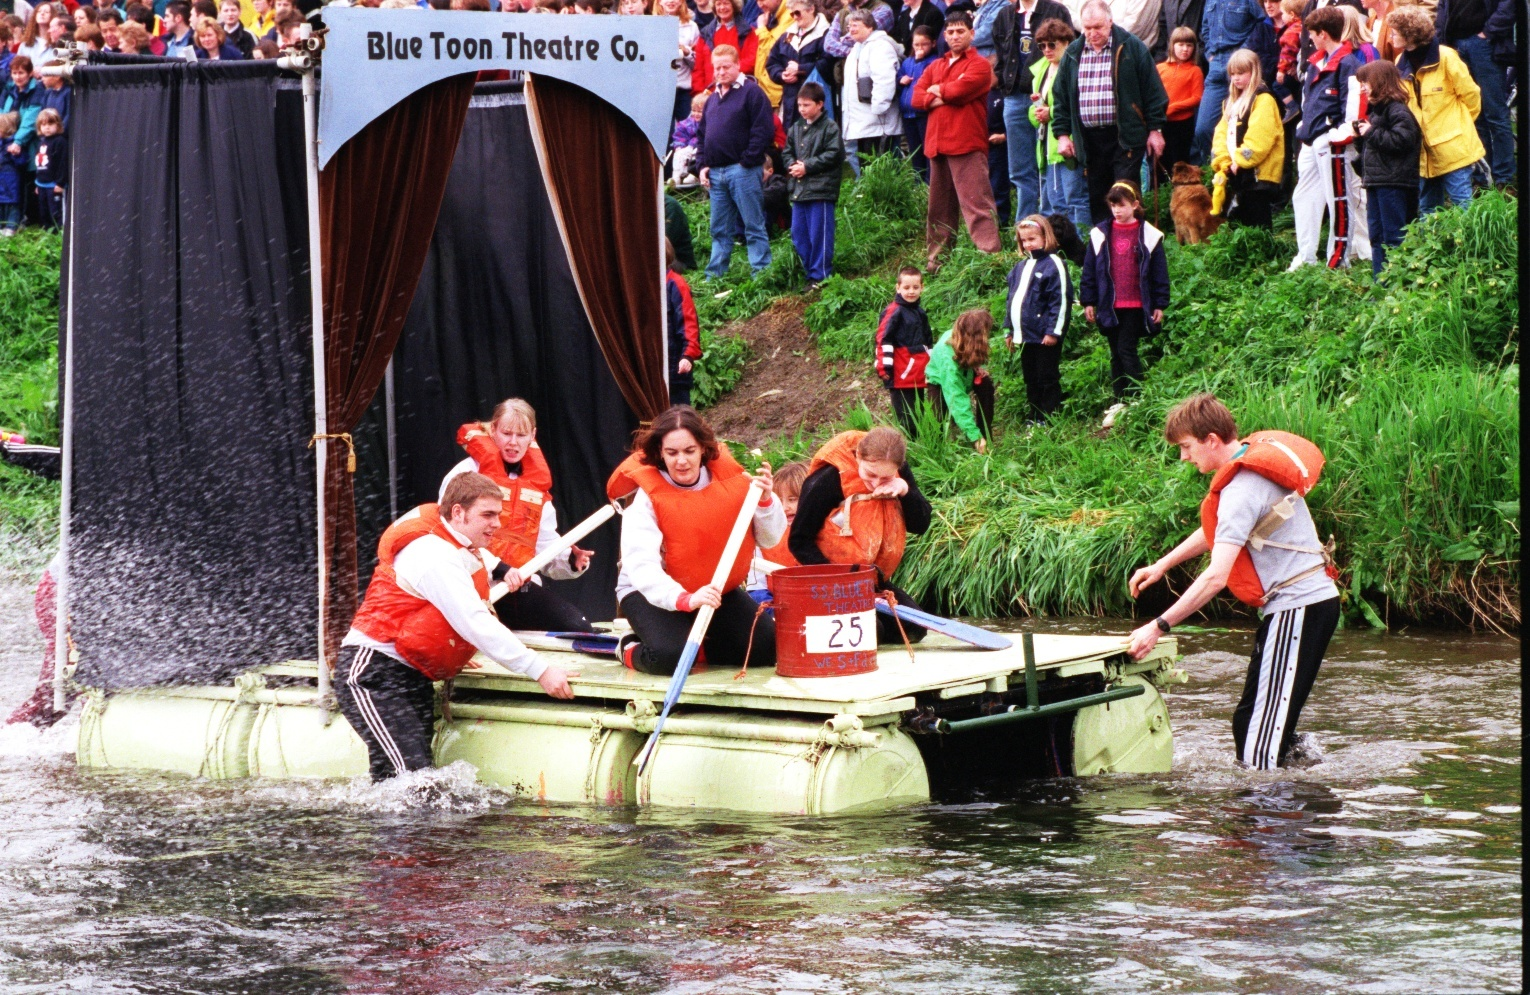 One of the entries in the 1998  Ythan Raft Race, Blue Toon Theatre Co, takes to the water at Ellon.